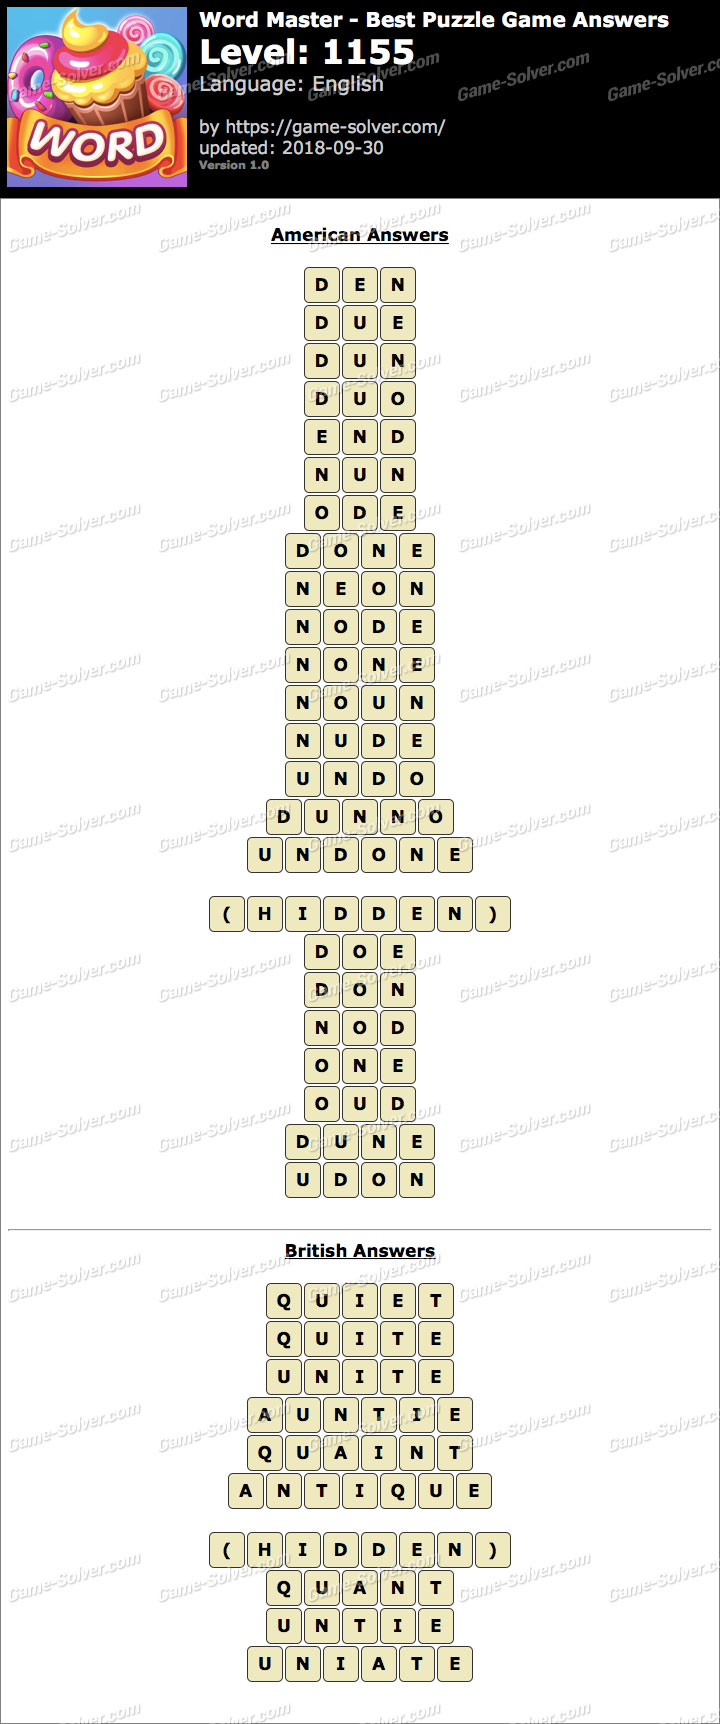 Word Master-Best Puzzle Game Level 1155 Answers